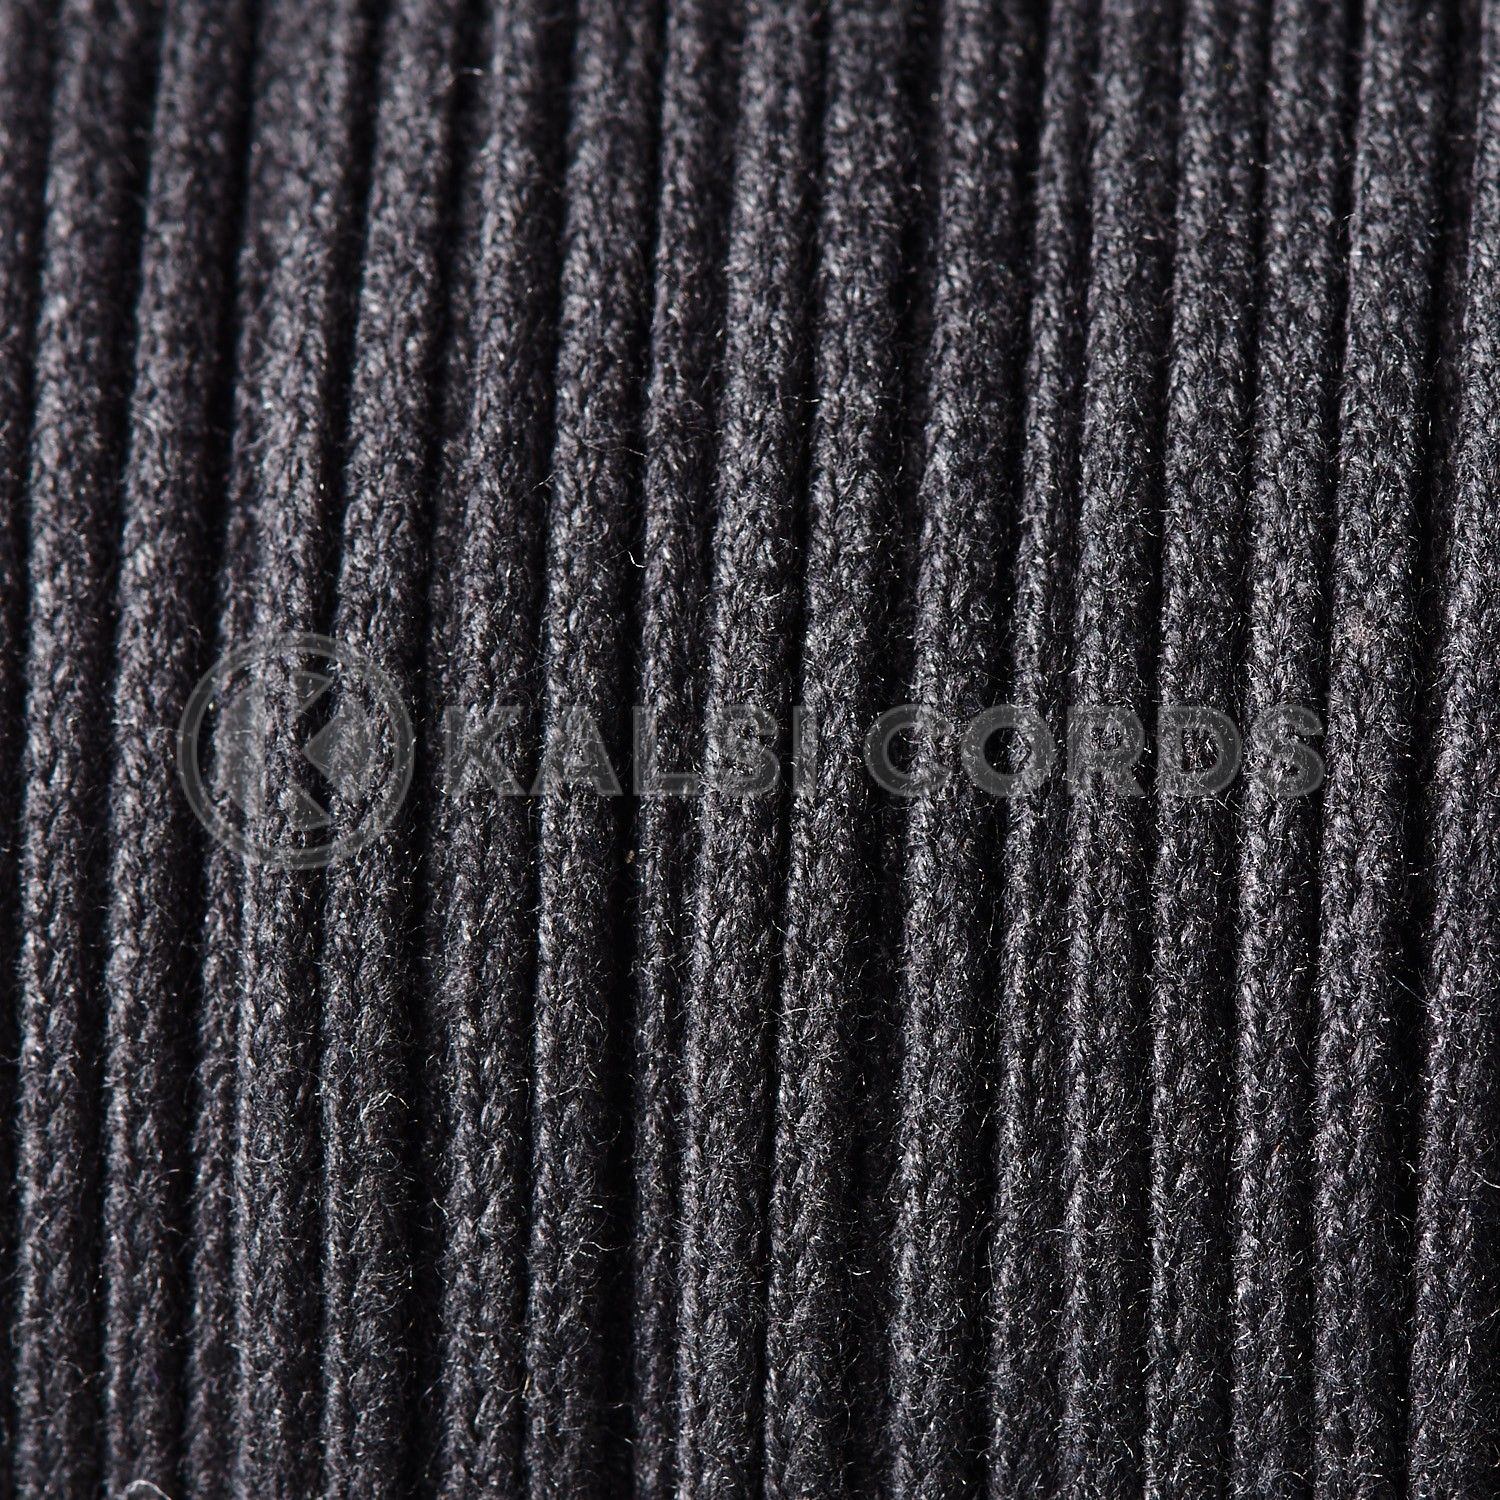 Black 4mm Round Cotton Cord Thin Braided String Piping Cushion Edging C223 Kalsi Cords